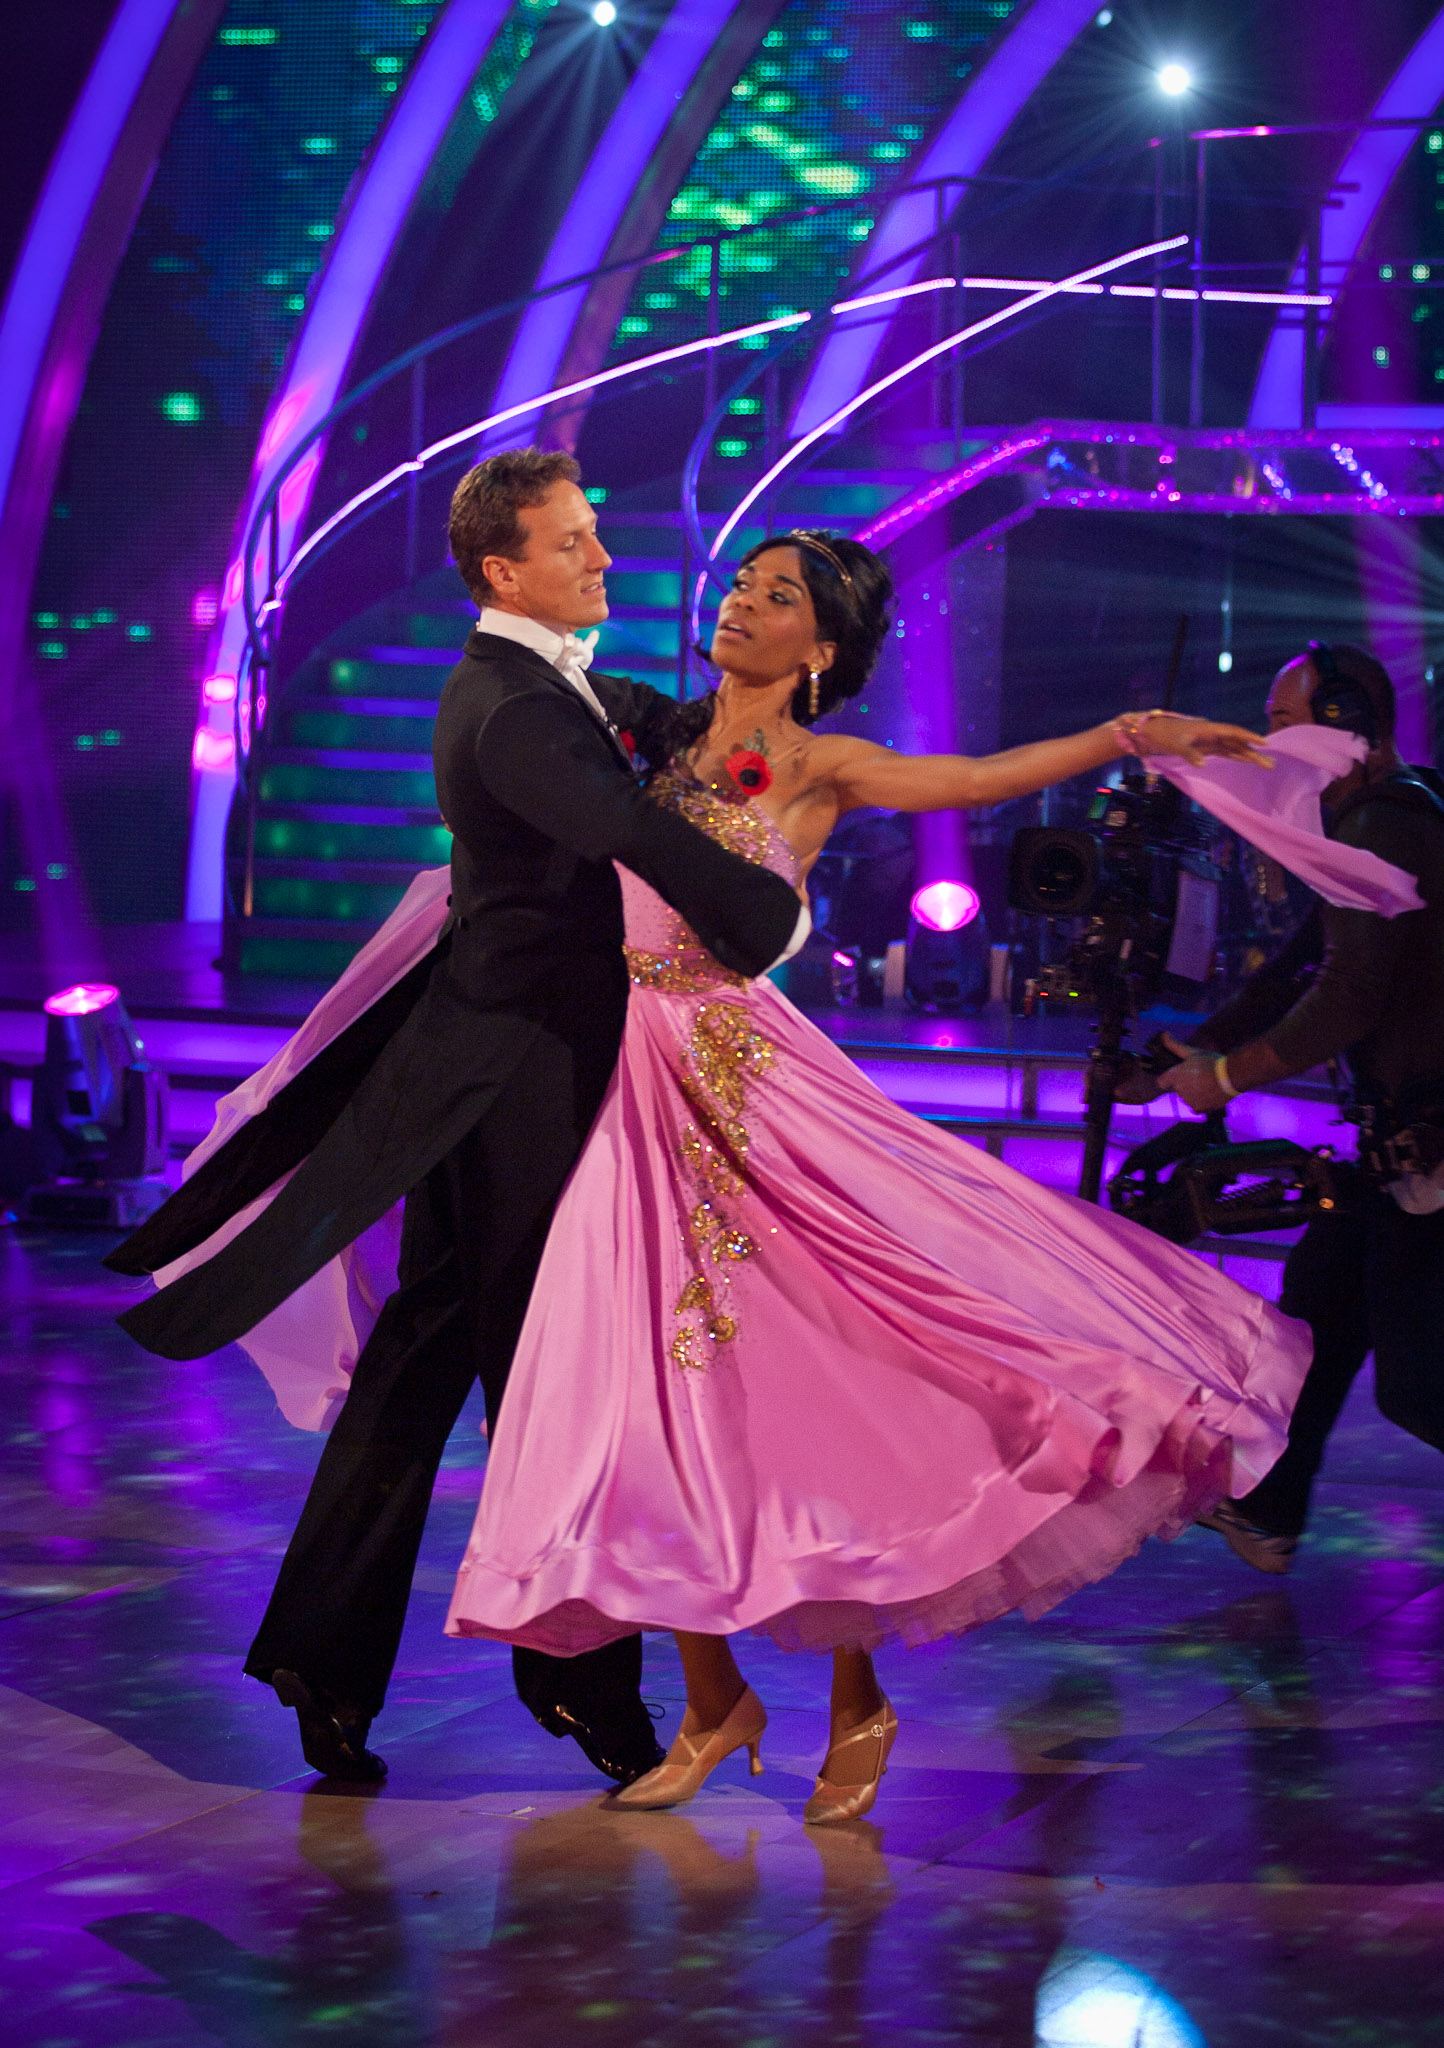 765b9017dd5058 *STRICTLY EMBARGOED FOR USE ONLINE OR IN PRINT BEFORE 18:15HRS ON SATURDAY  6TH NOVEMBER 2010* PICTURE SHOWS: Michelle Williams and Brendan Cole DANCE:  Waltz ...